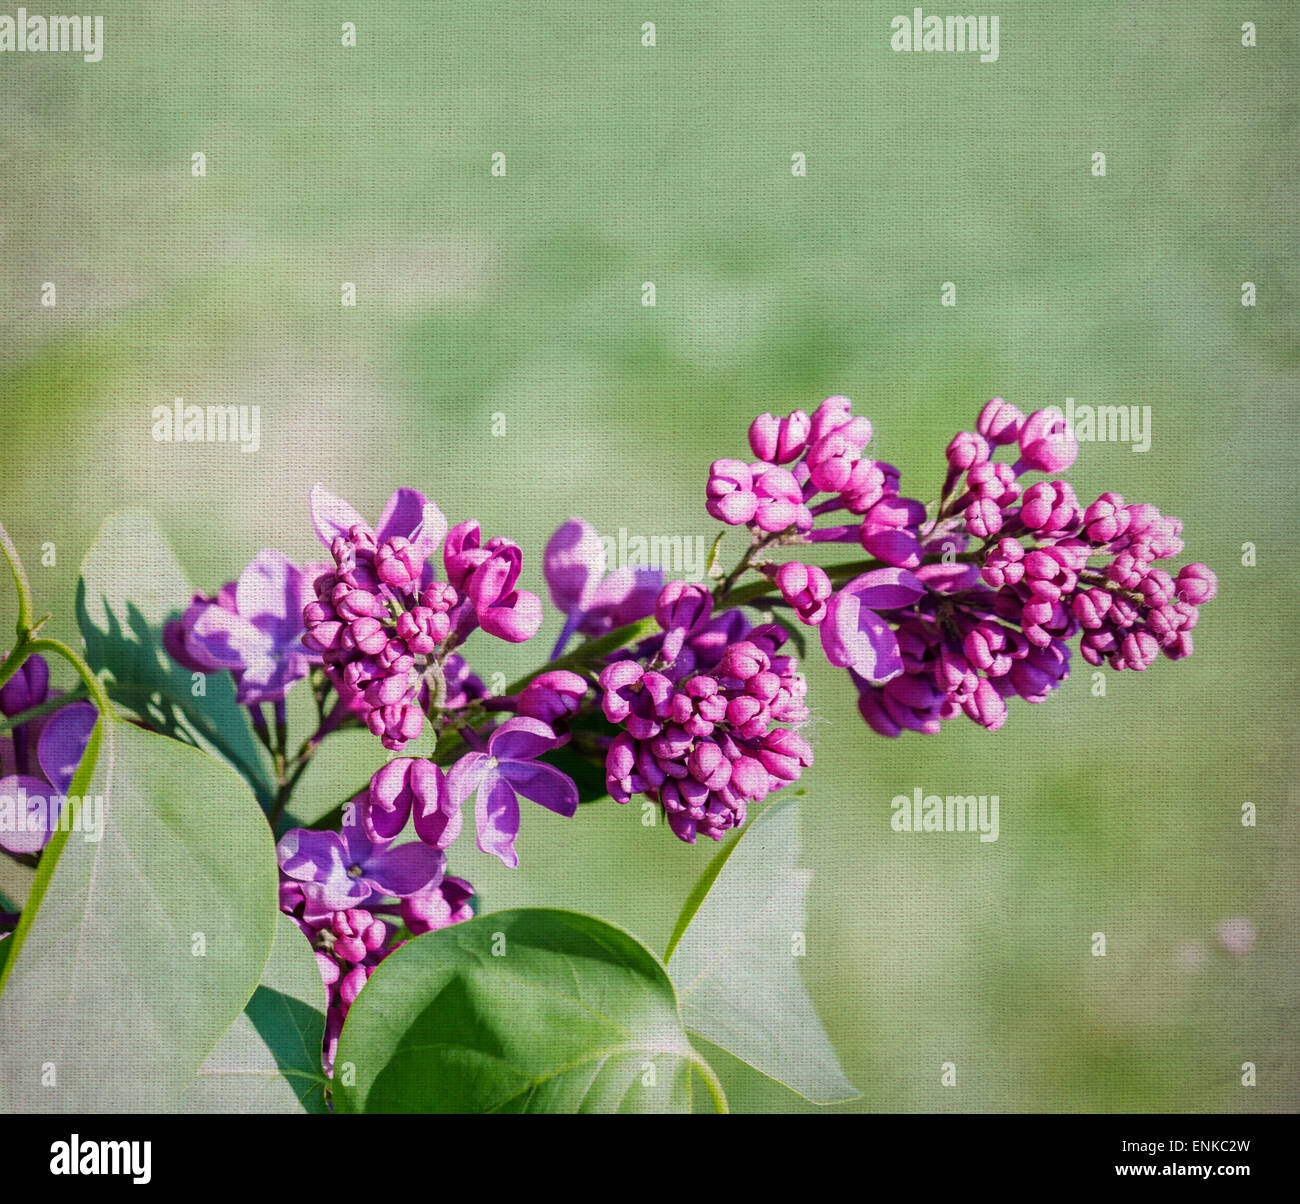 Purple lilac flower close-up over canvas background. Selective focus with shallow depth of field. - Stock Image